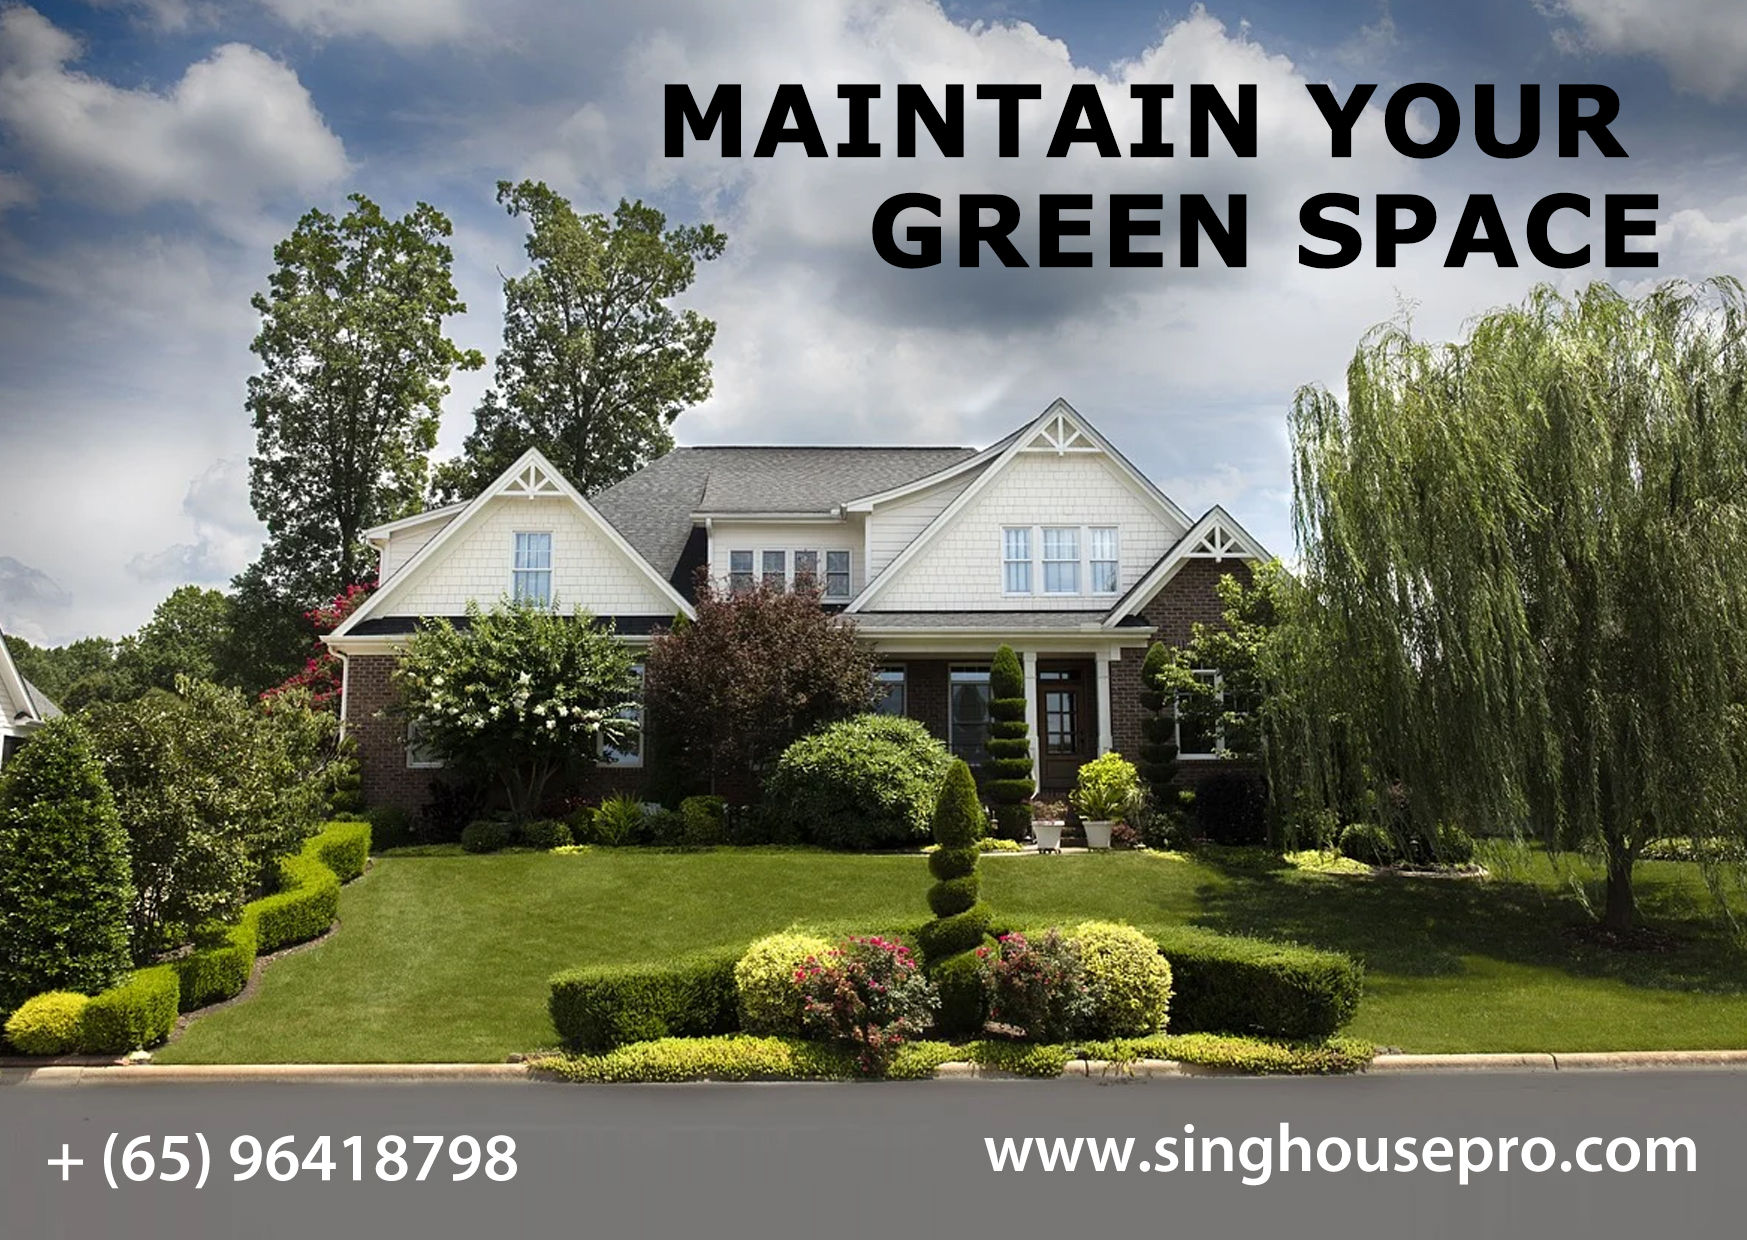 Do's And Don'ts of Maintaining Your Green Space